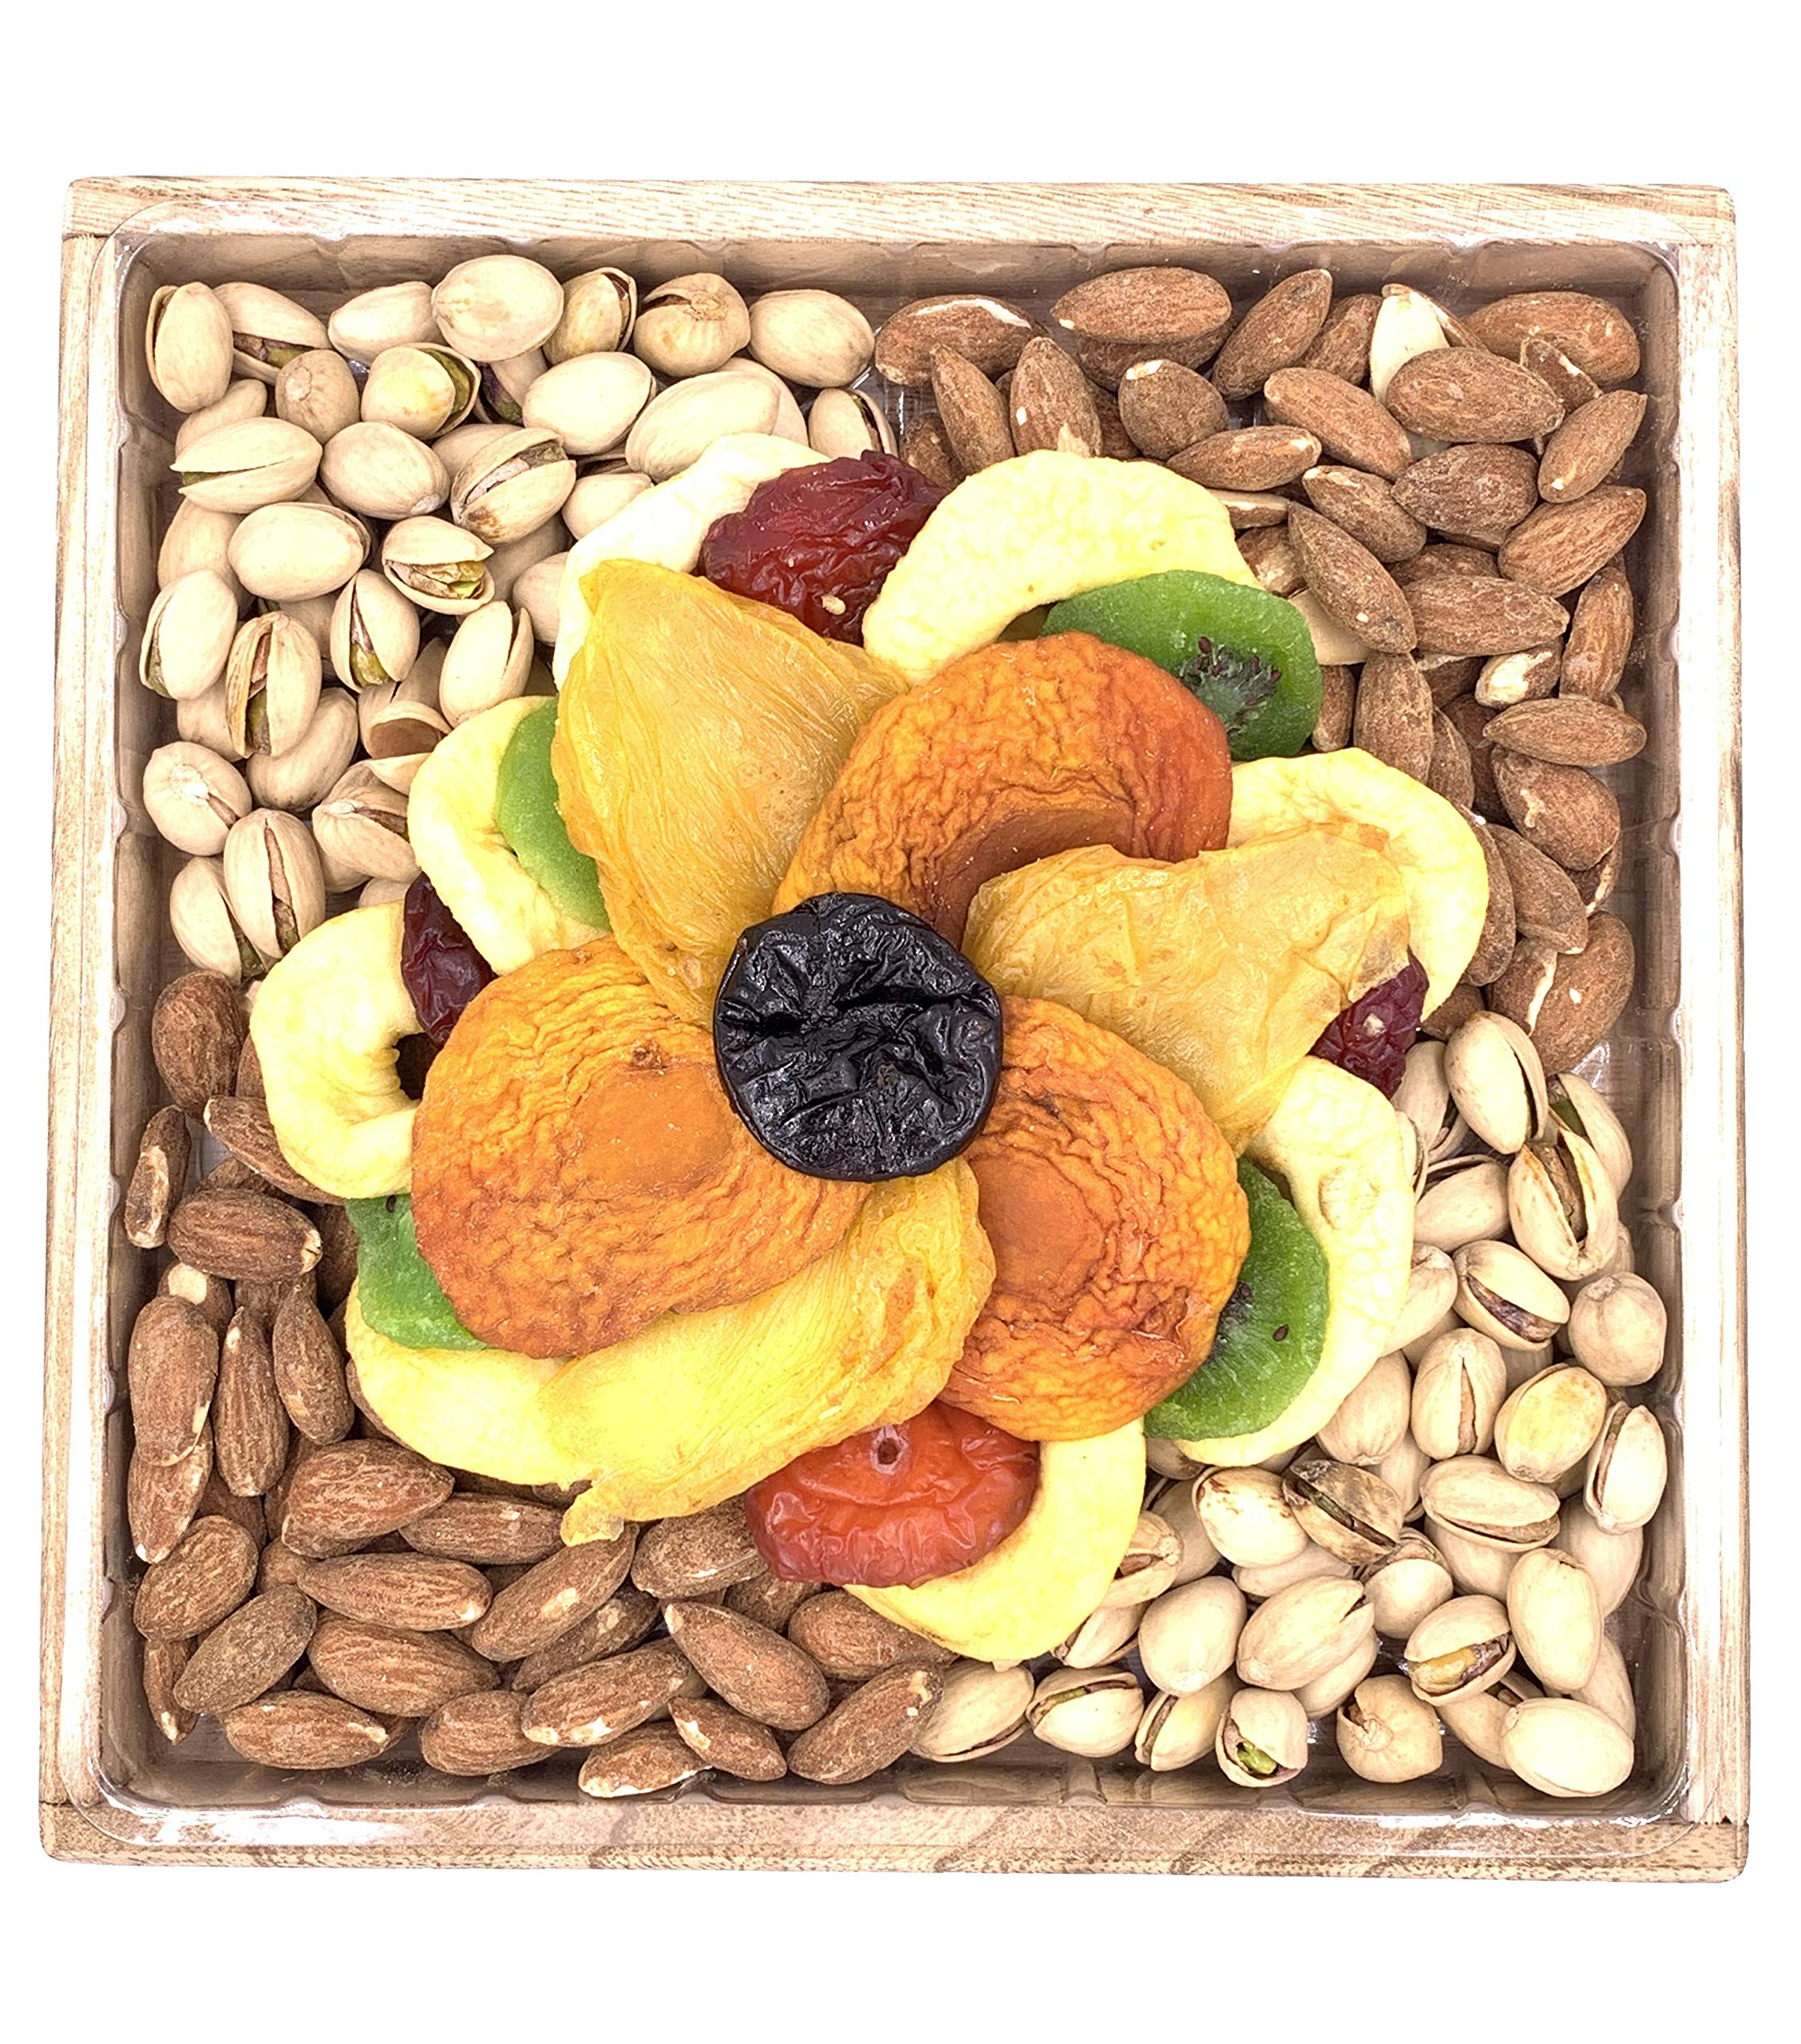 Nut and Dried Fruit Gift Box, Healthy Gourmet Snack Christmas Food Box, Great for Birthdays, Sympathy, Family Parties & Movie Night or as a Corporate Thank you